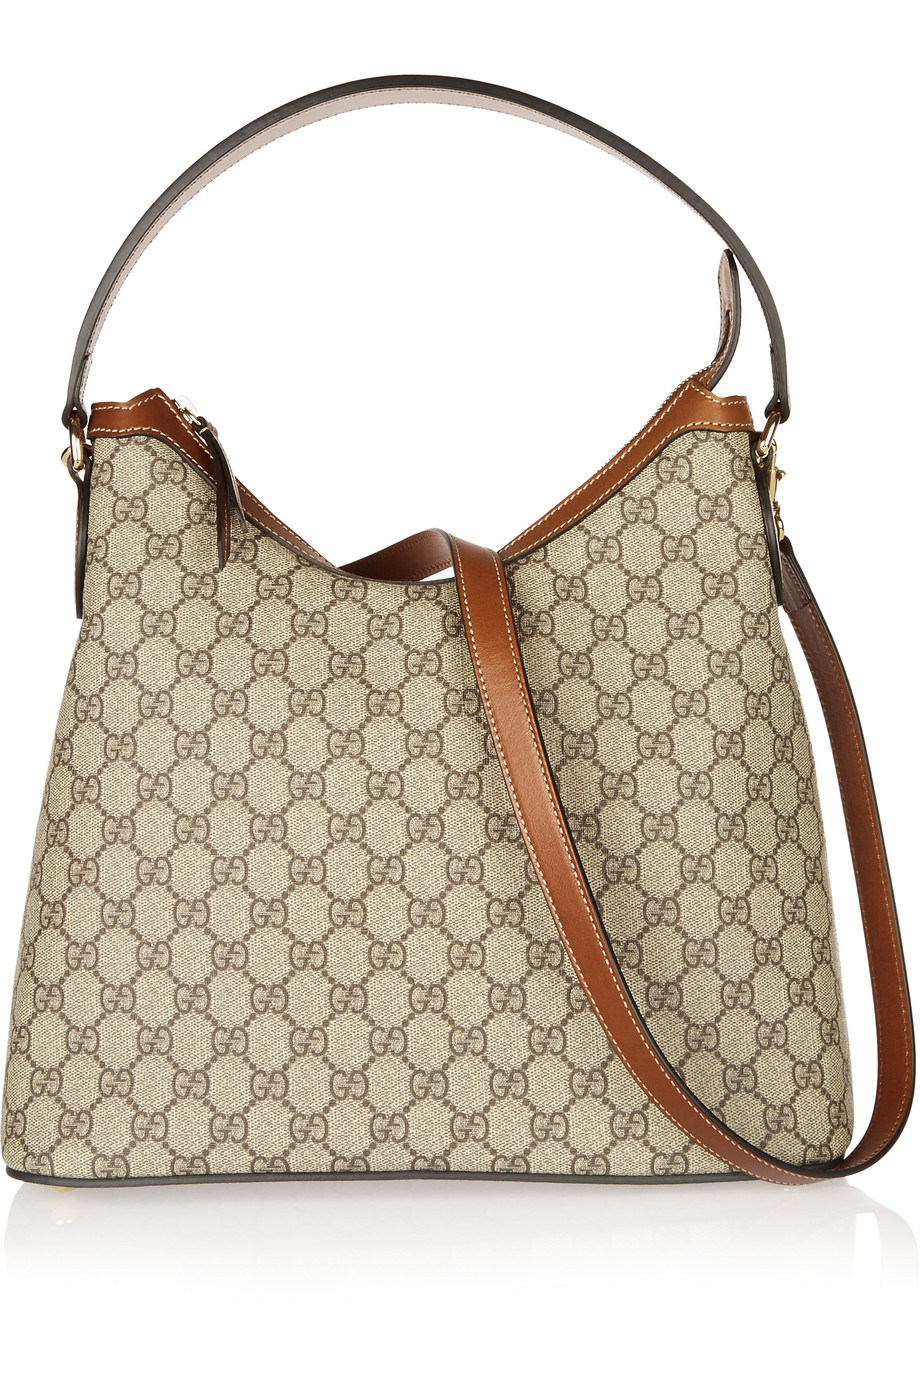 Gucci Linea A Hobo Leather-Trimmed Coated Canvas Shoulder Bag, Tan, Women's